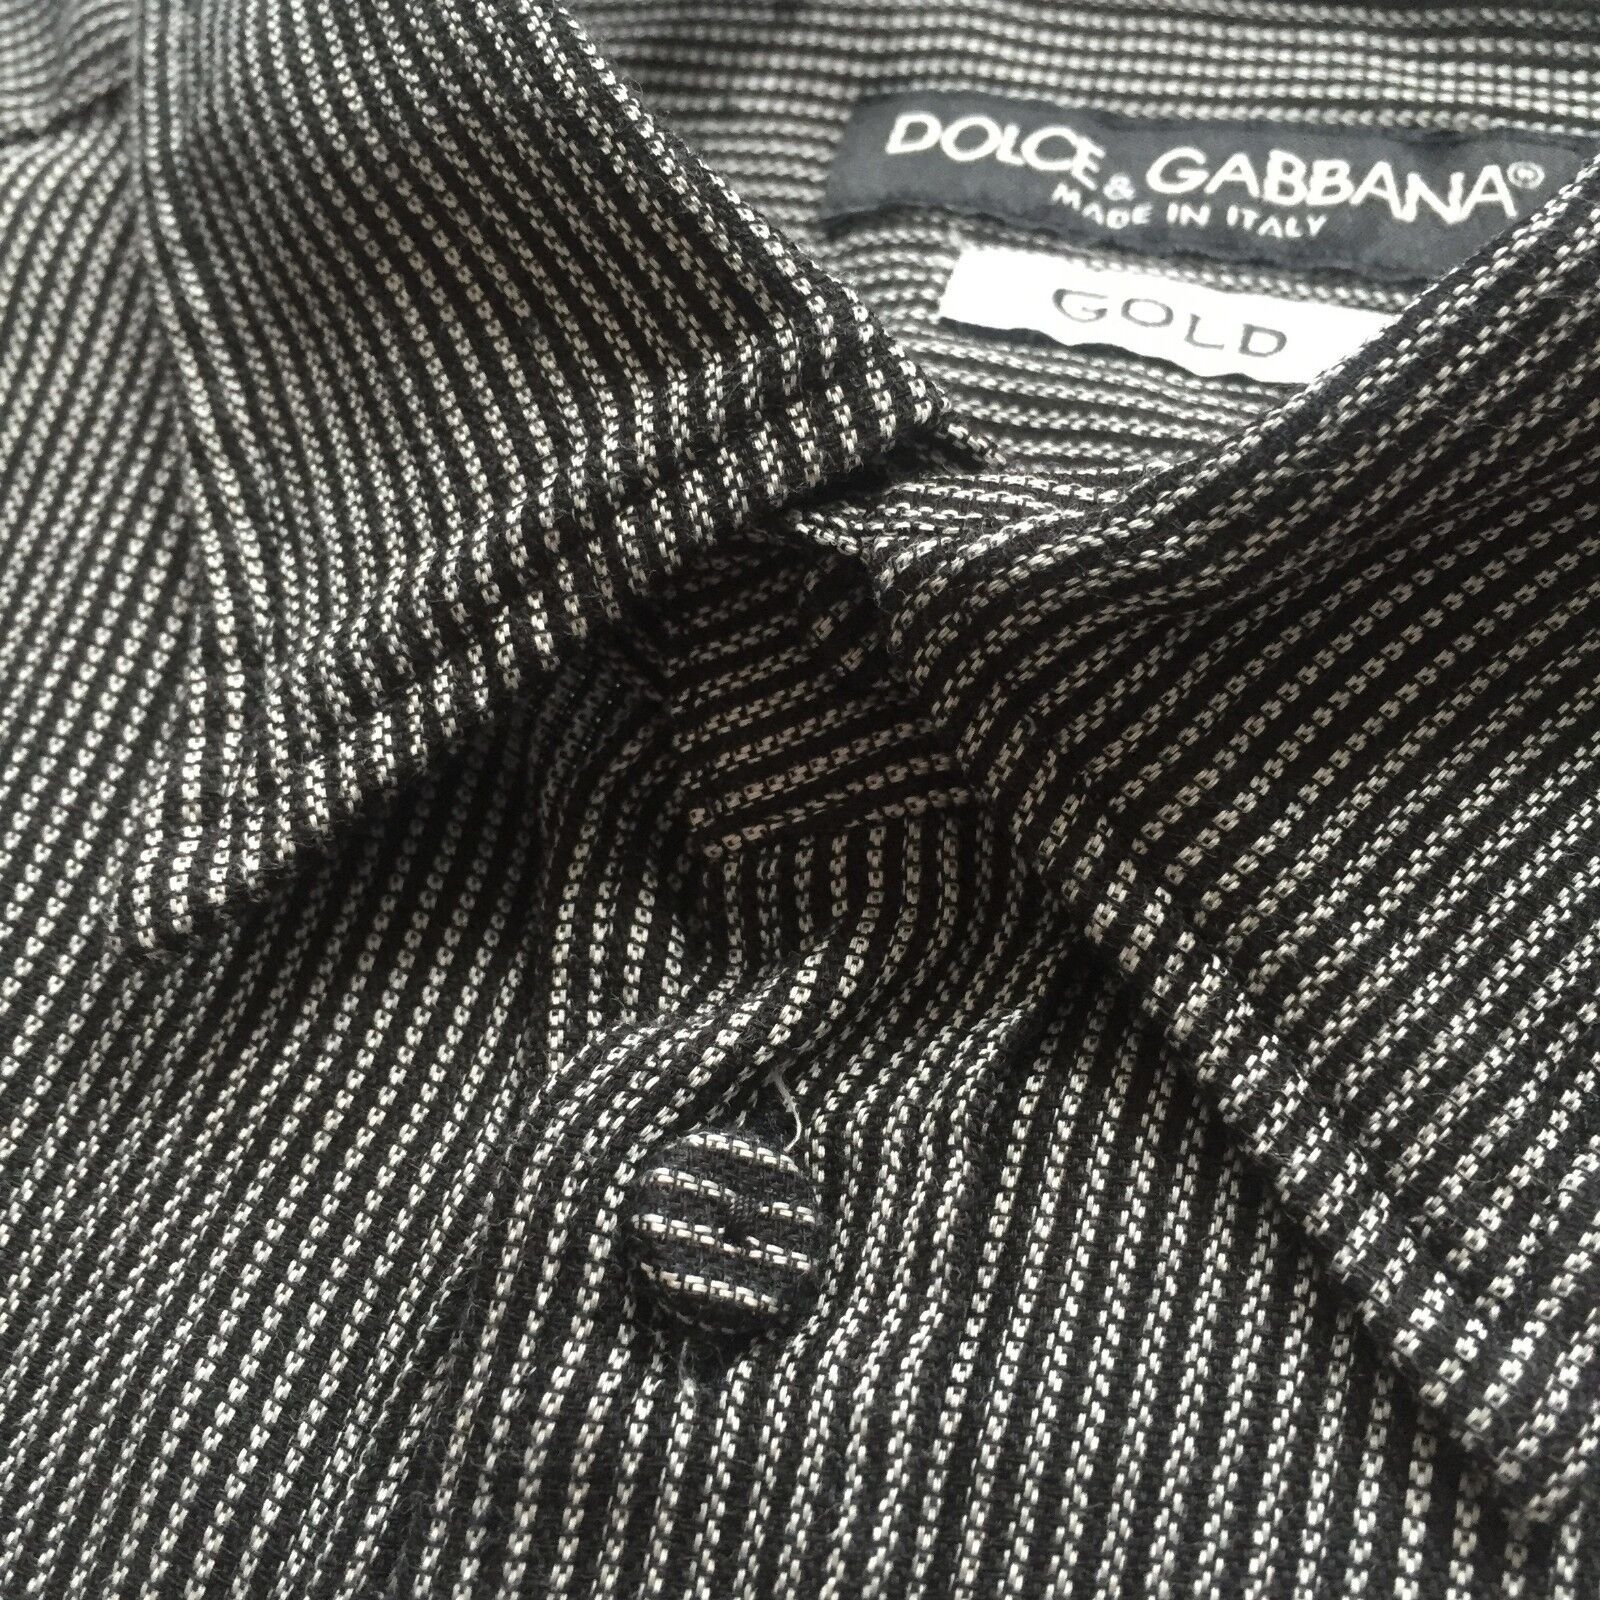 NWT 415 Dolce  Gabbana Mens Black  White Striped Button Down Shirt AUTHENTIC